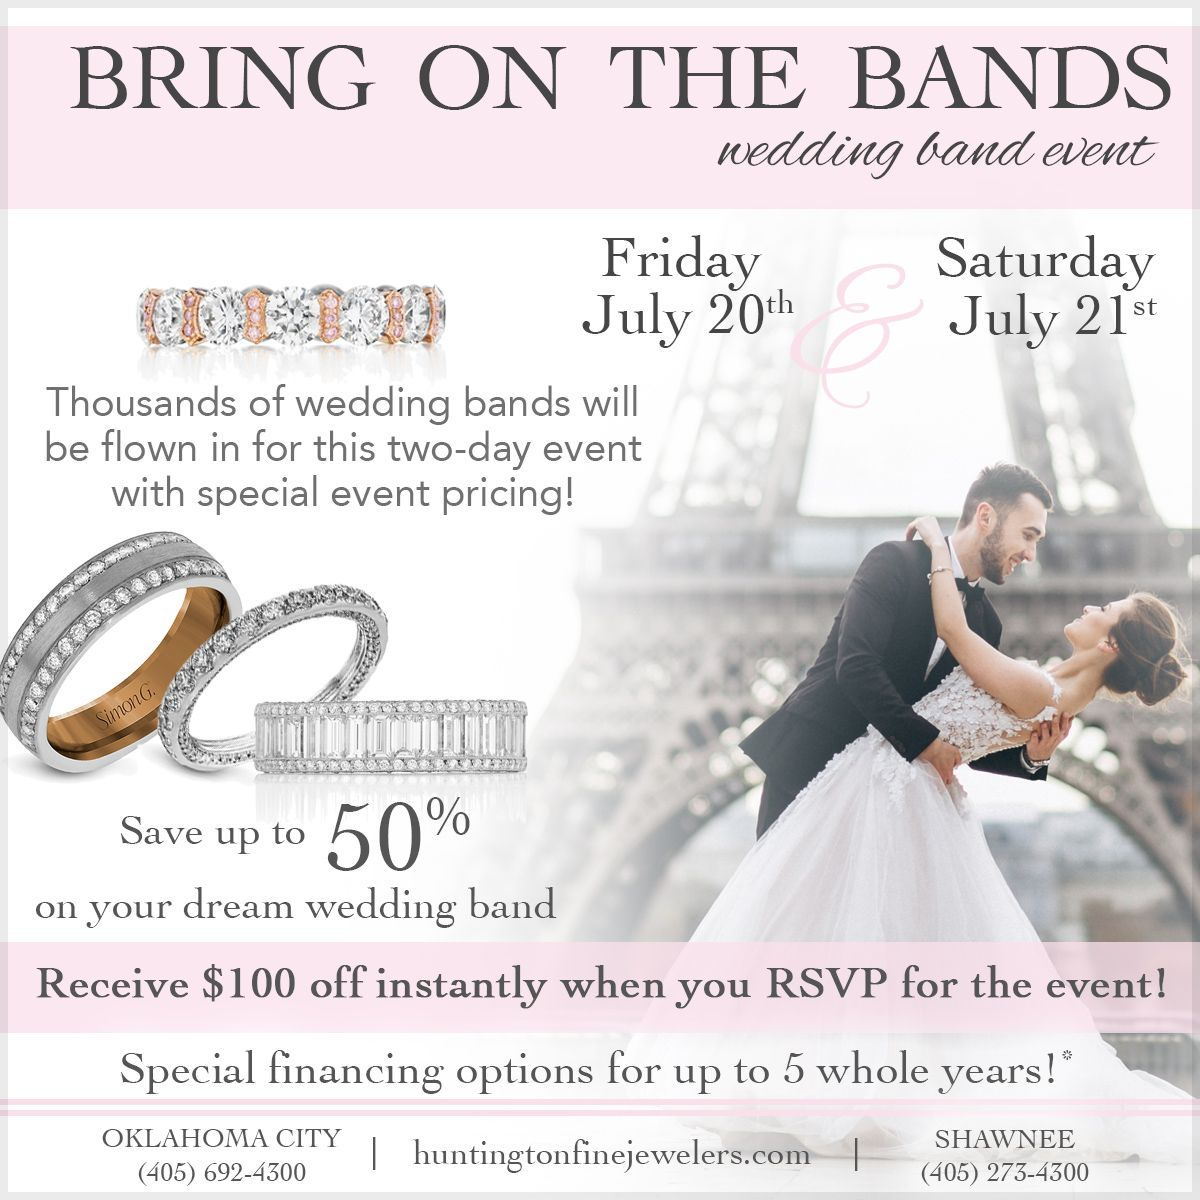 Bring On The Bands Event This Friday And Saturday Make Time To Stop In And View Thousands Of Wedding Bands Flow Wedding Band Styles Event Wedding Bands